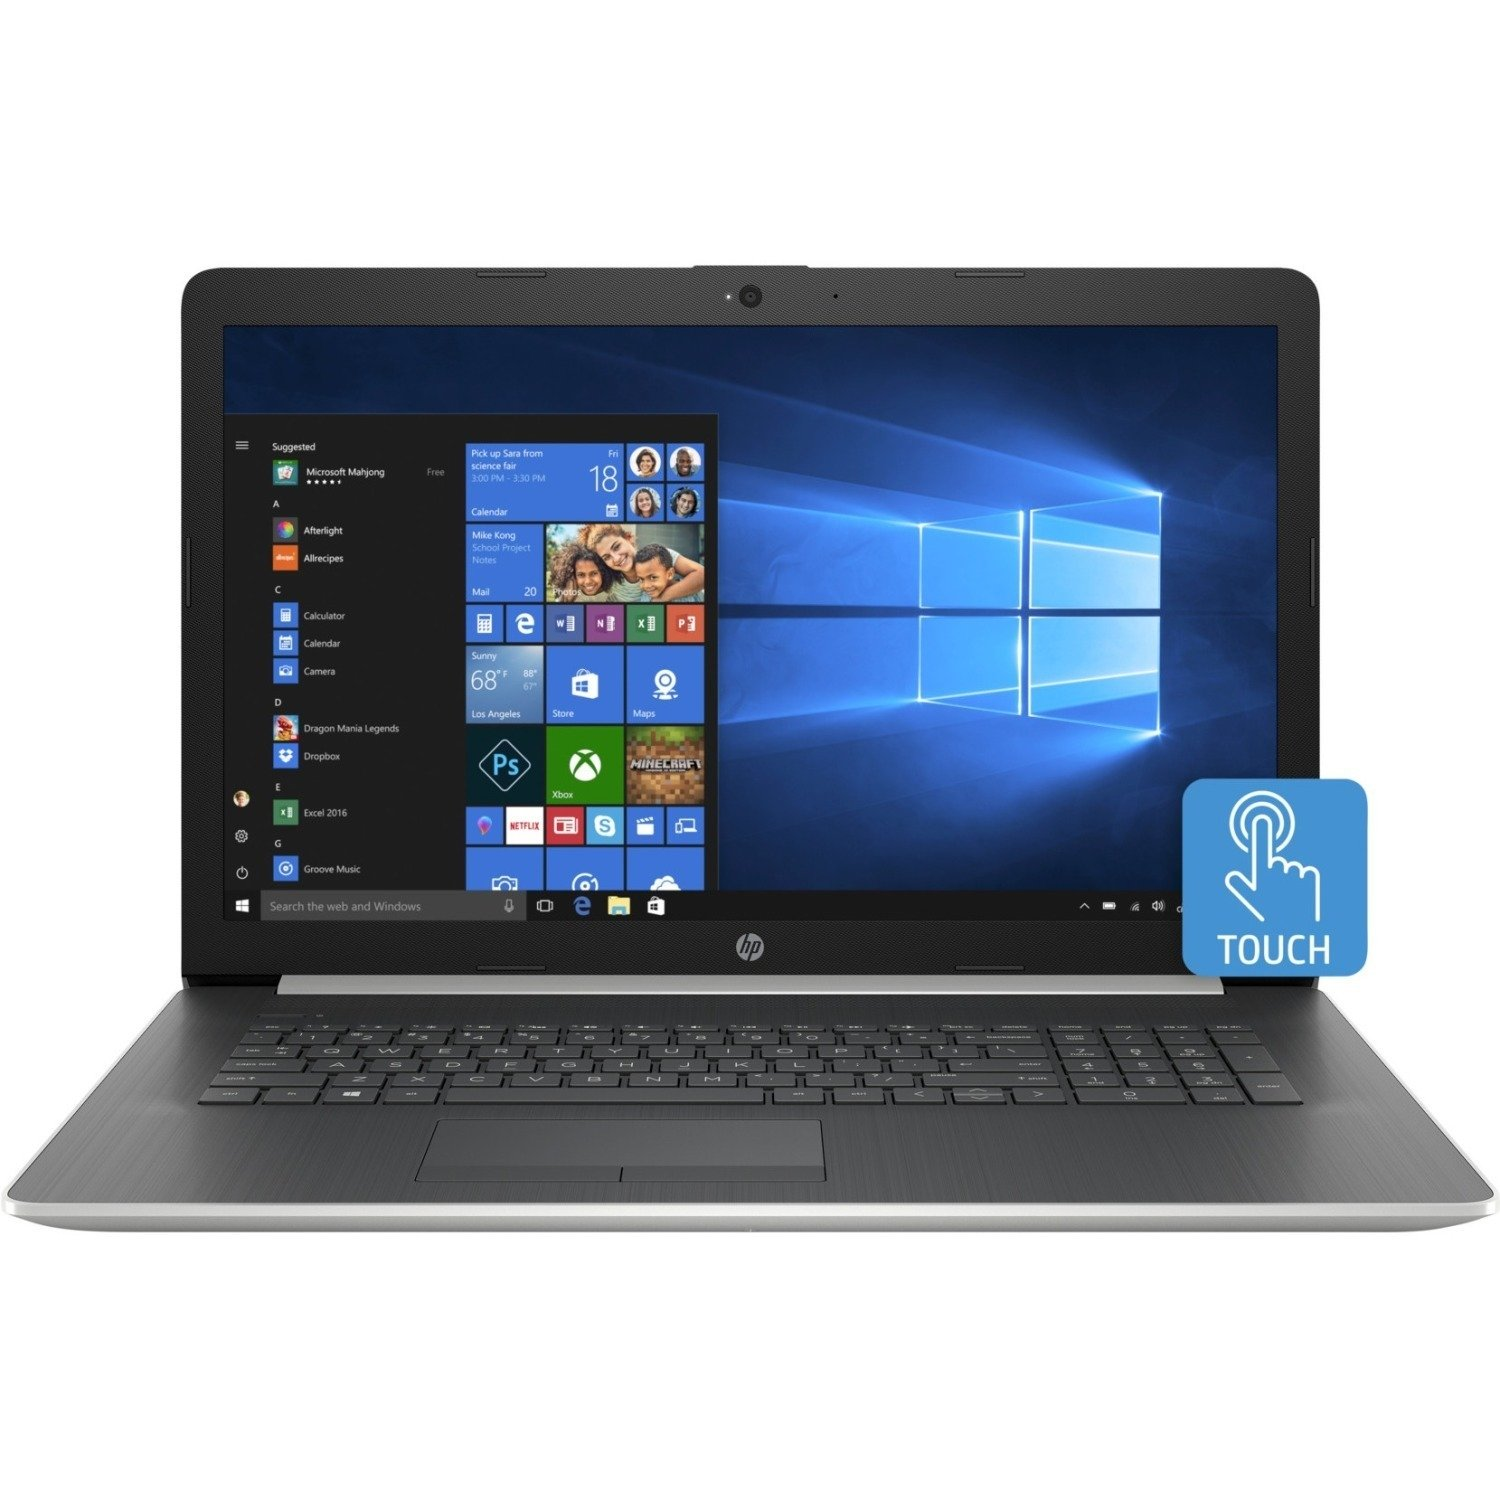 HP 17-by0000 17-by0053cl 17.3″ Touchscreen LCD Notebook – Intel Core